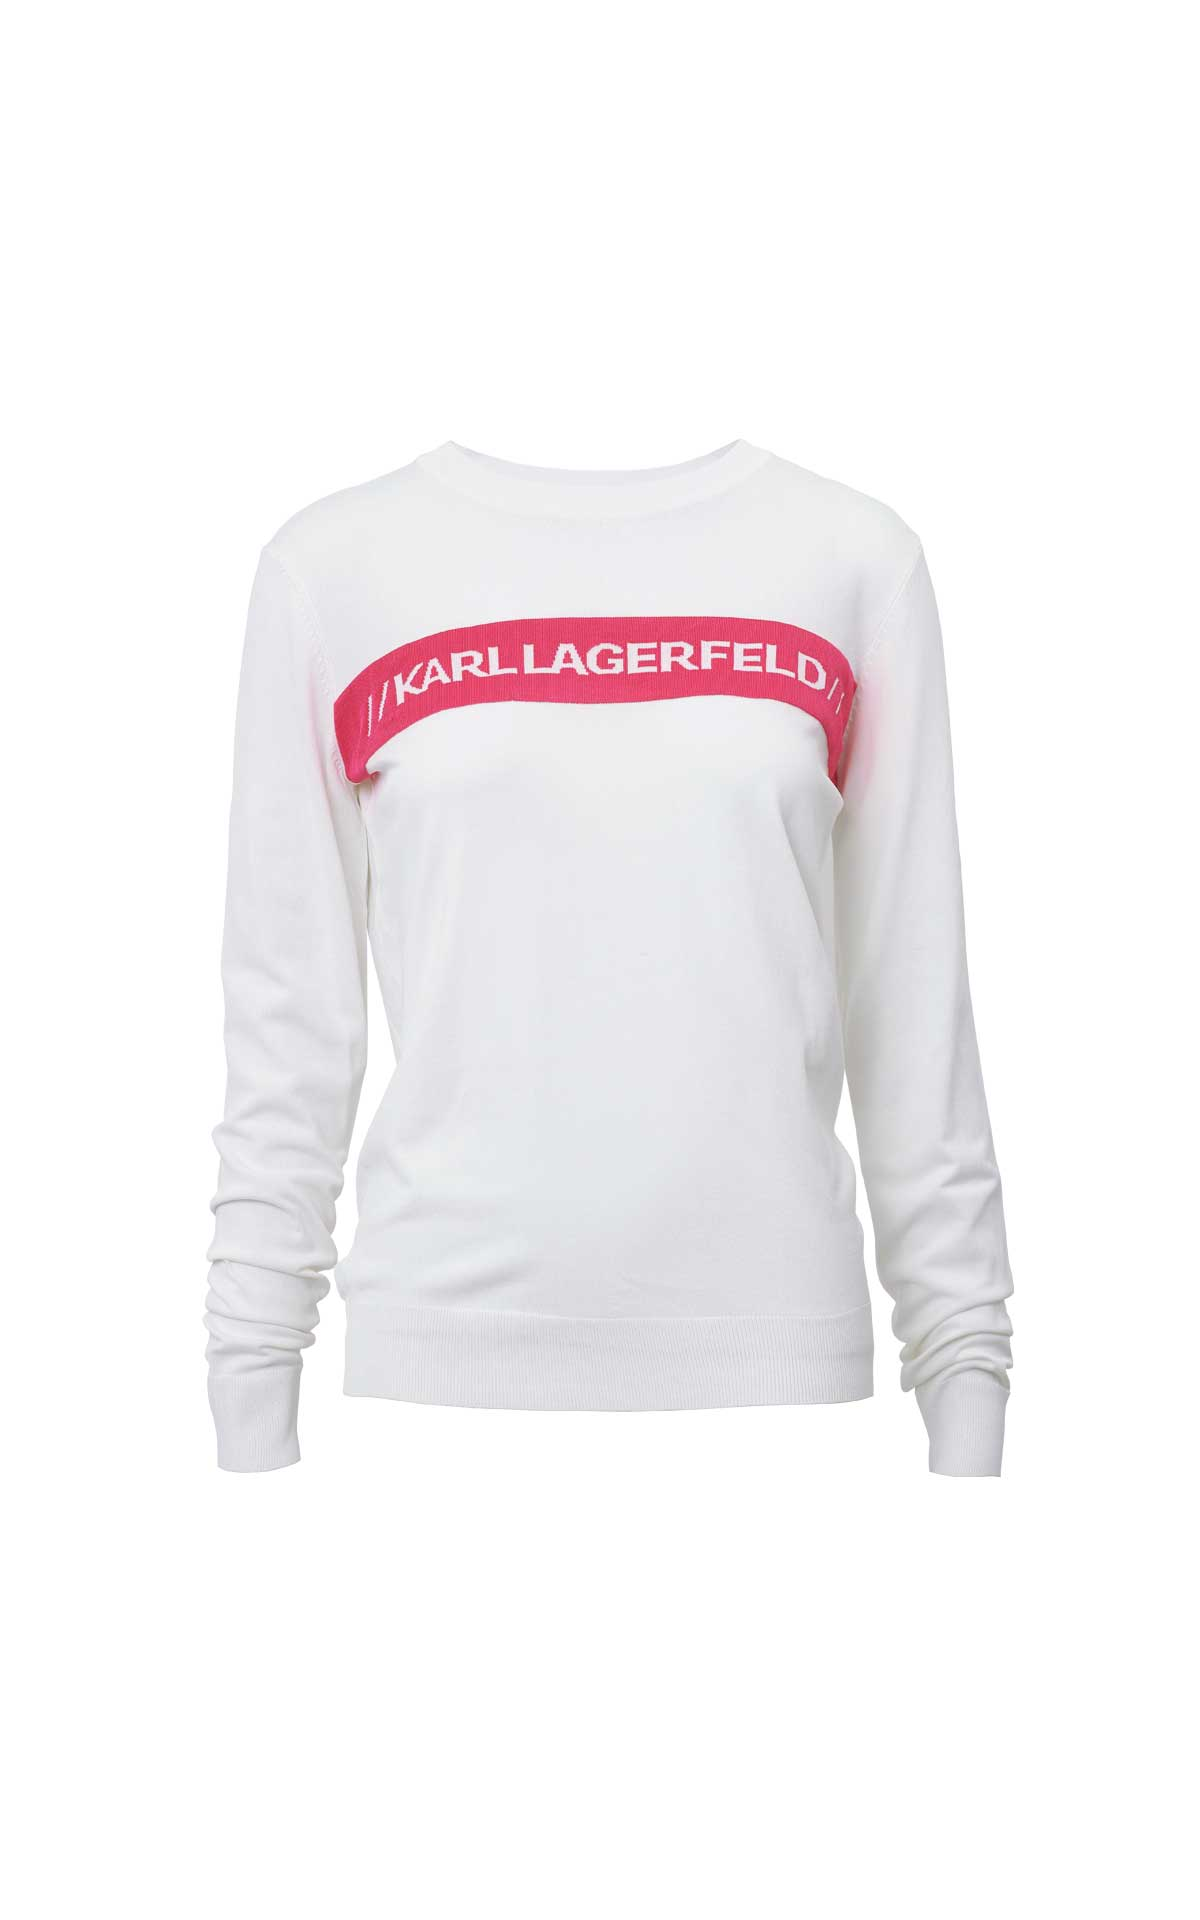 White sweater with logo in pink Karl Lagerfeld